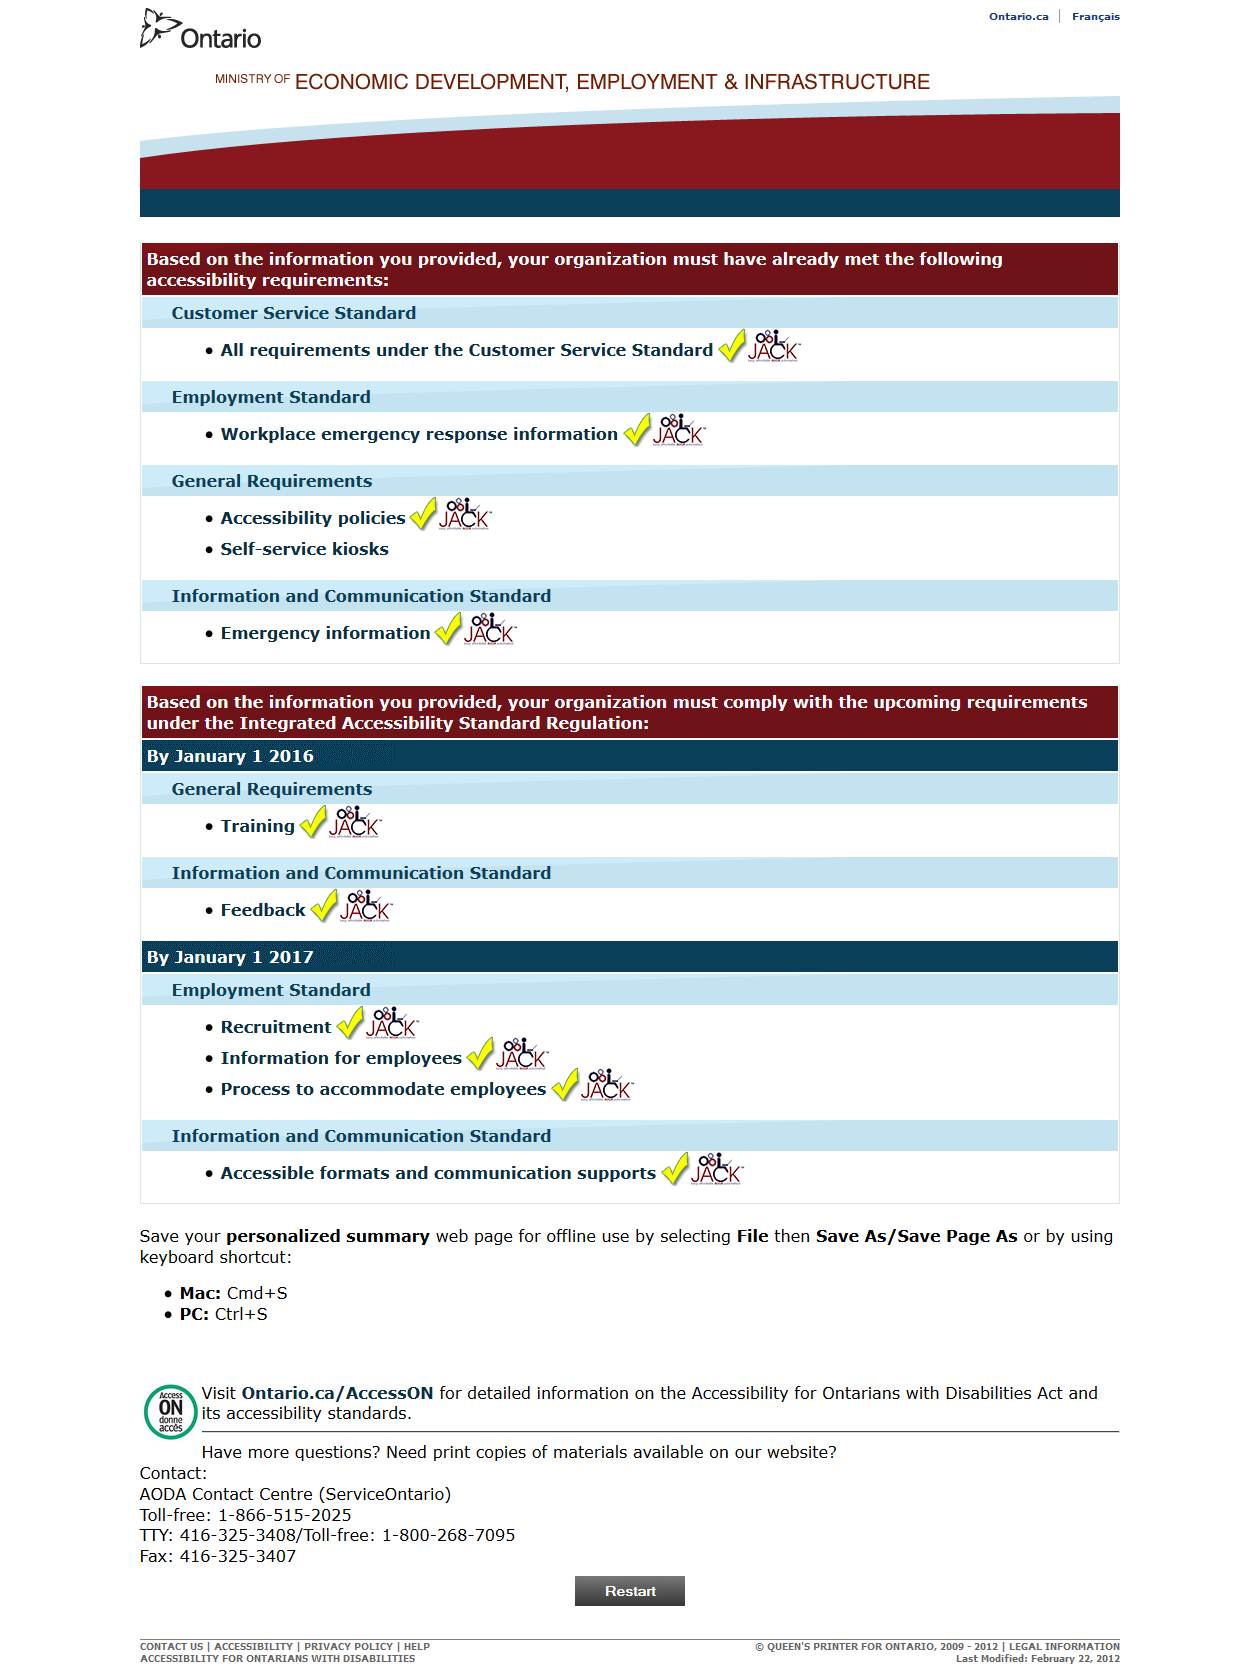 aoda compliance wizard REQUIREMENTS 20-49 employees